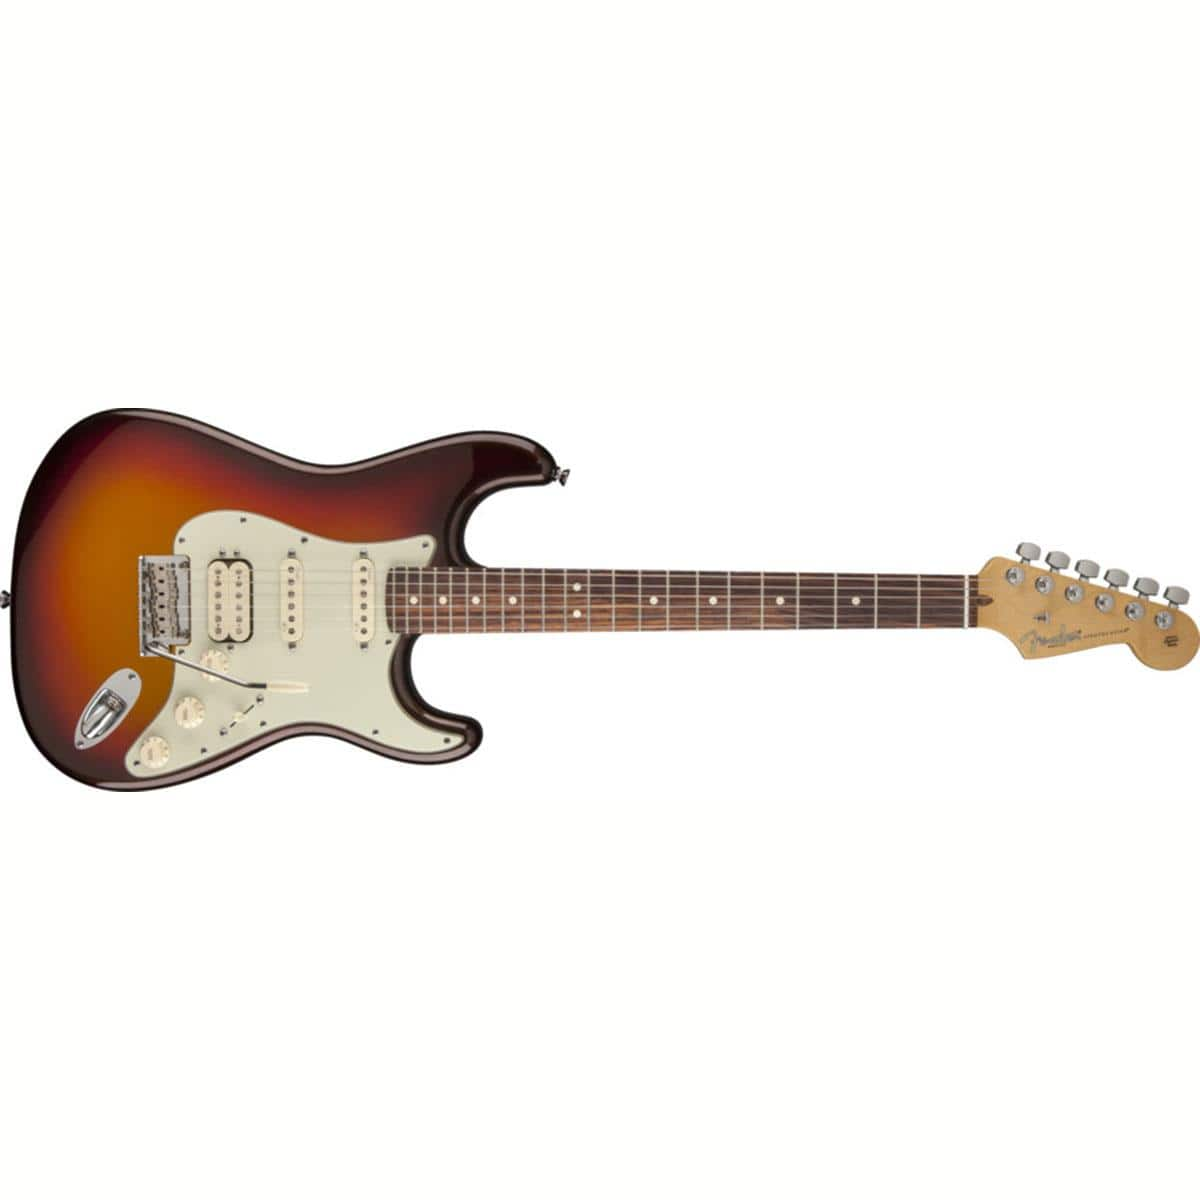 Fender American Deluxe Stratocaster Plus HSS Electric Guitar  $850 + Free Shipping